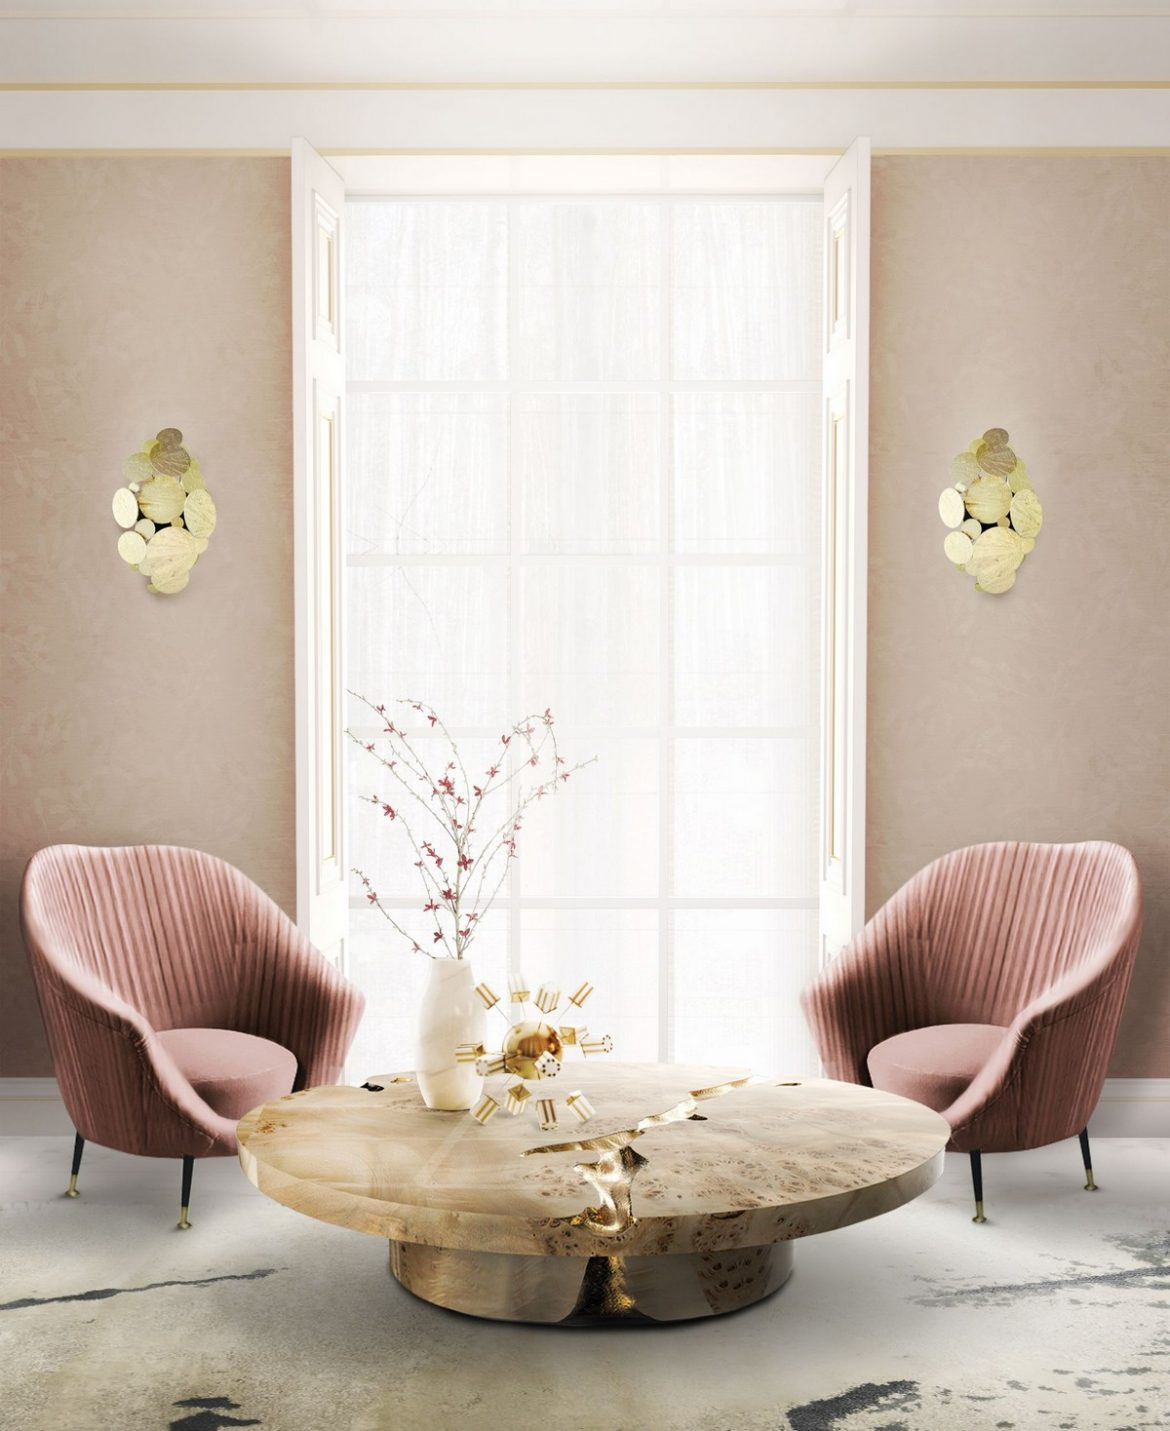 center tables The Most Exquisite Center Tables For Your Home Decor empire